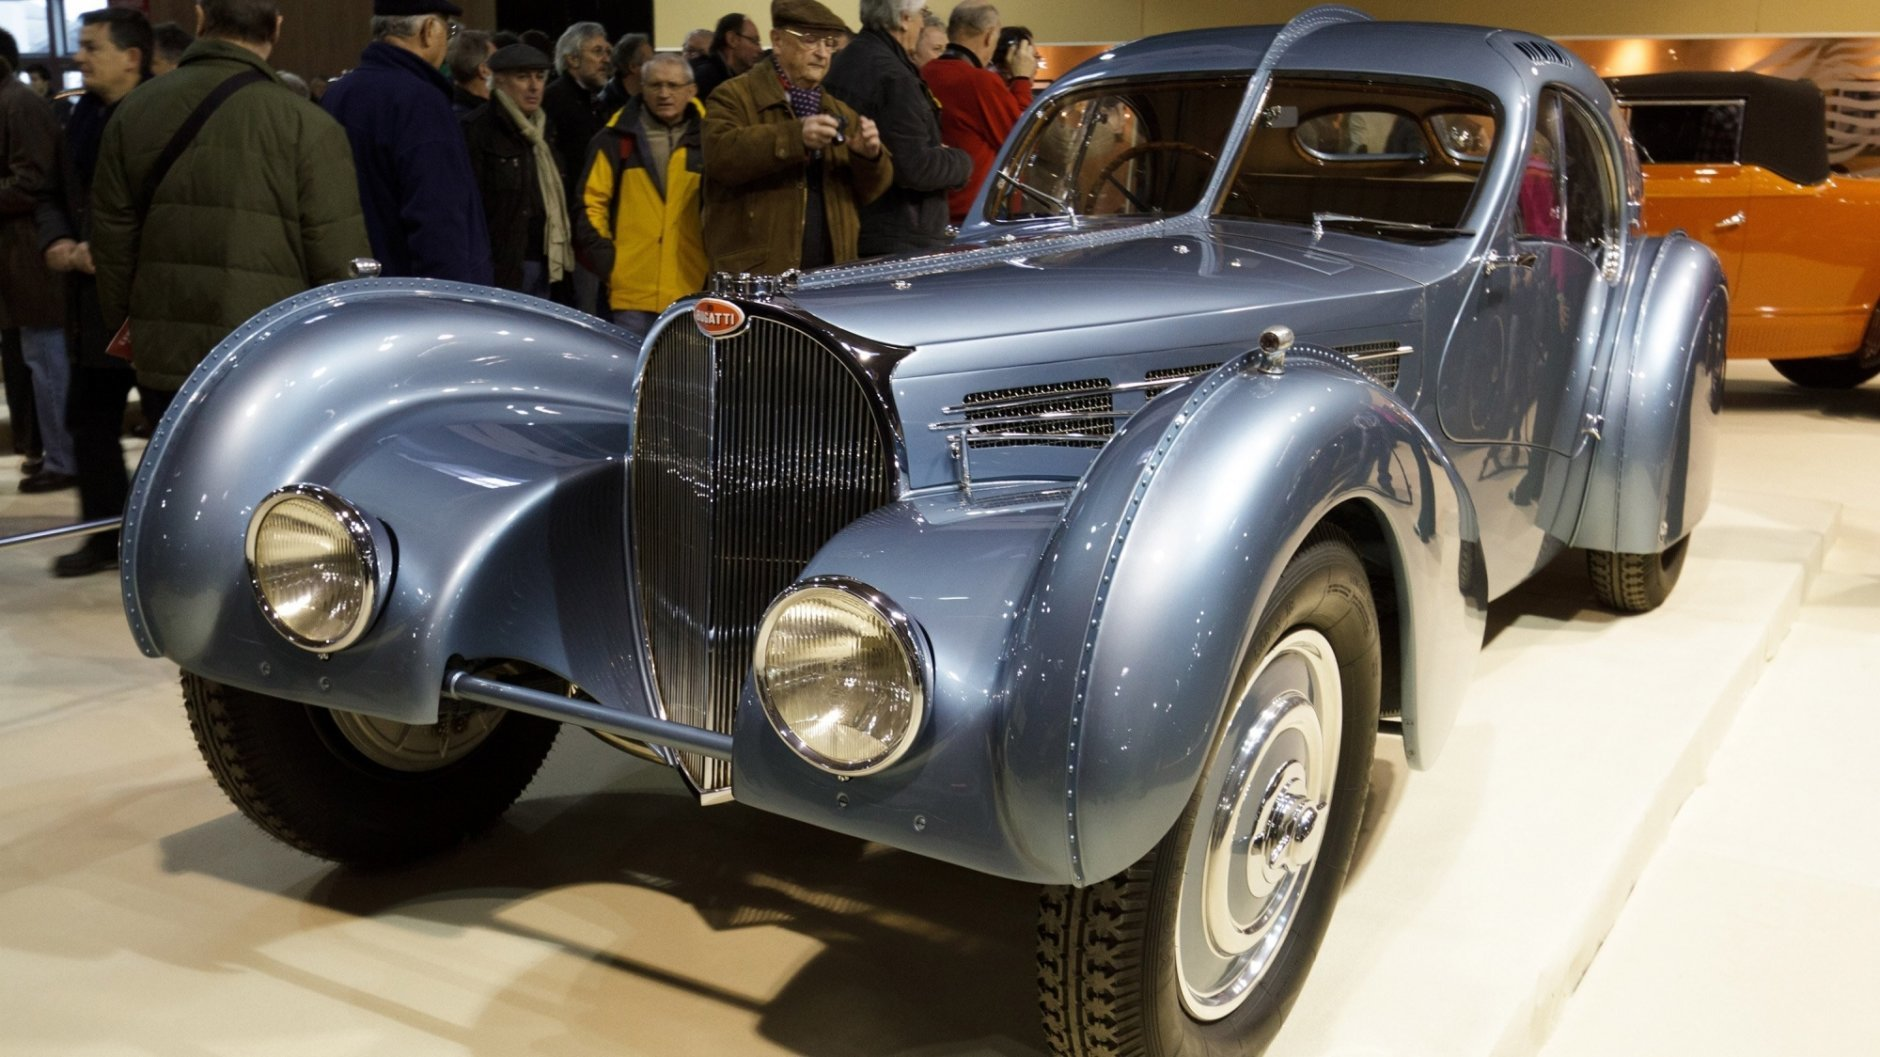 The latest Bugatti is designed to recall the Type 57 SC Atlantic of the 1930s. (Richard Bord/Getty Images)